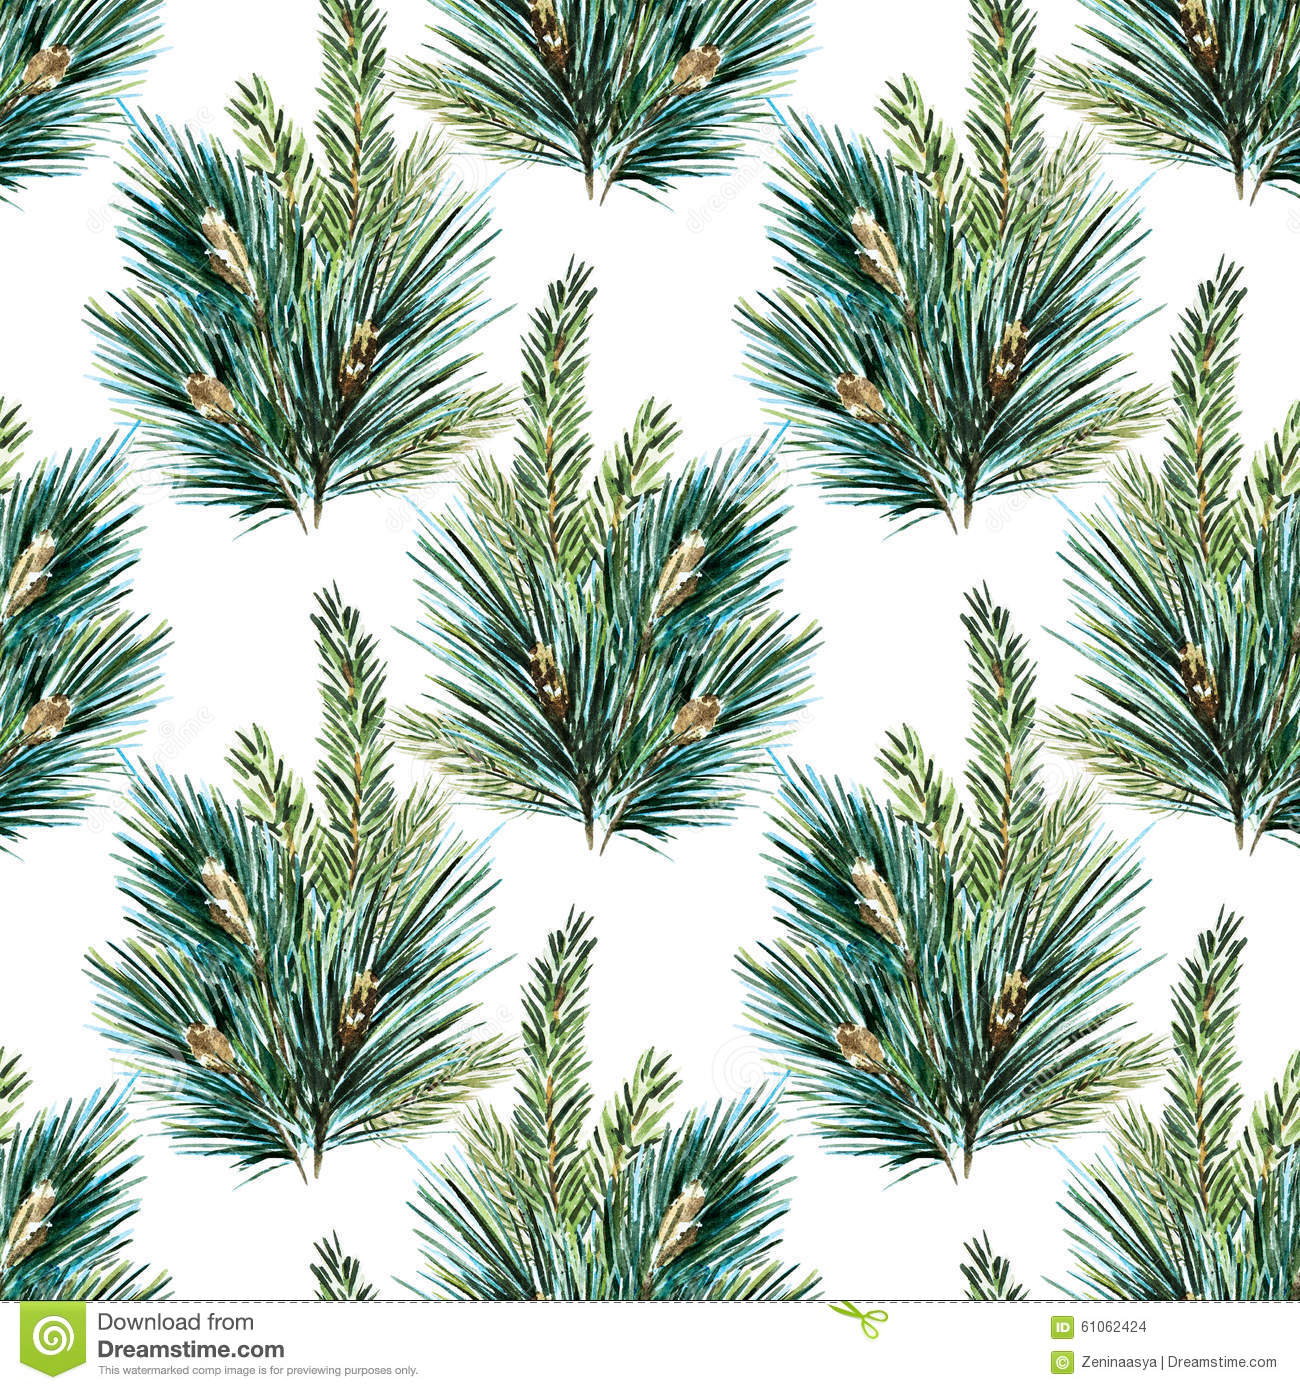 Watercolour Christmas Tree: Raster Watercolor Christmas Tree Pattern Stock Photo